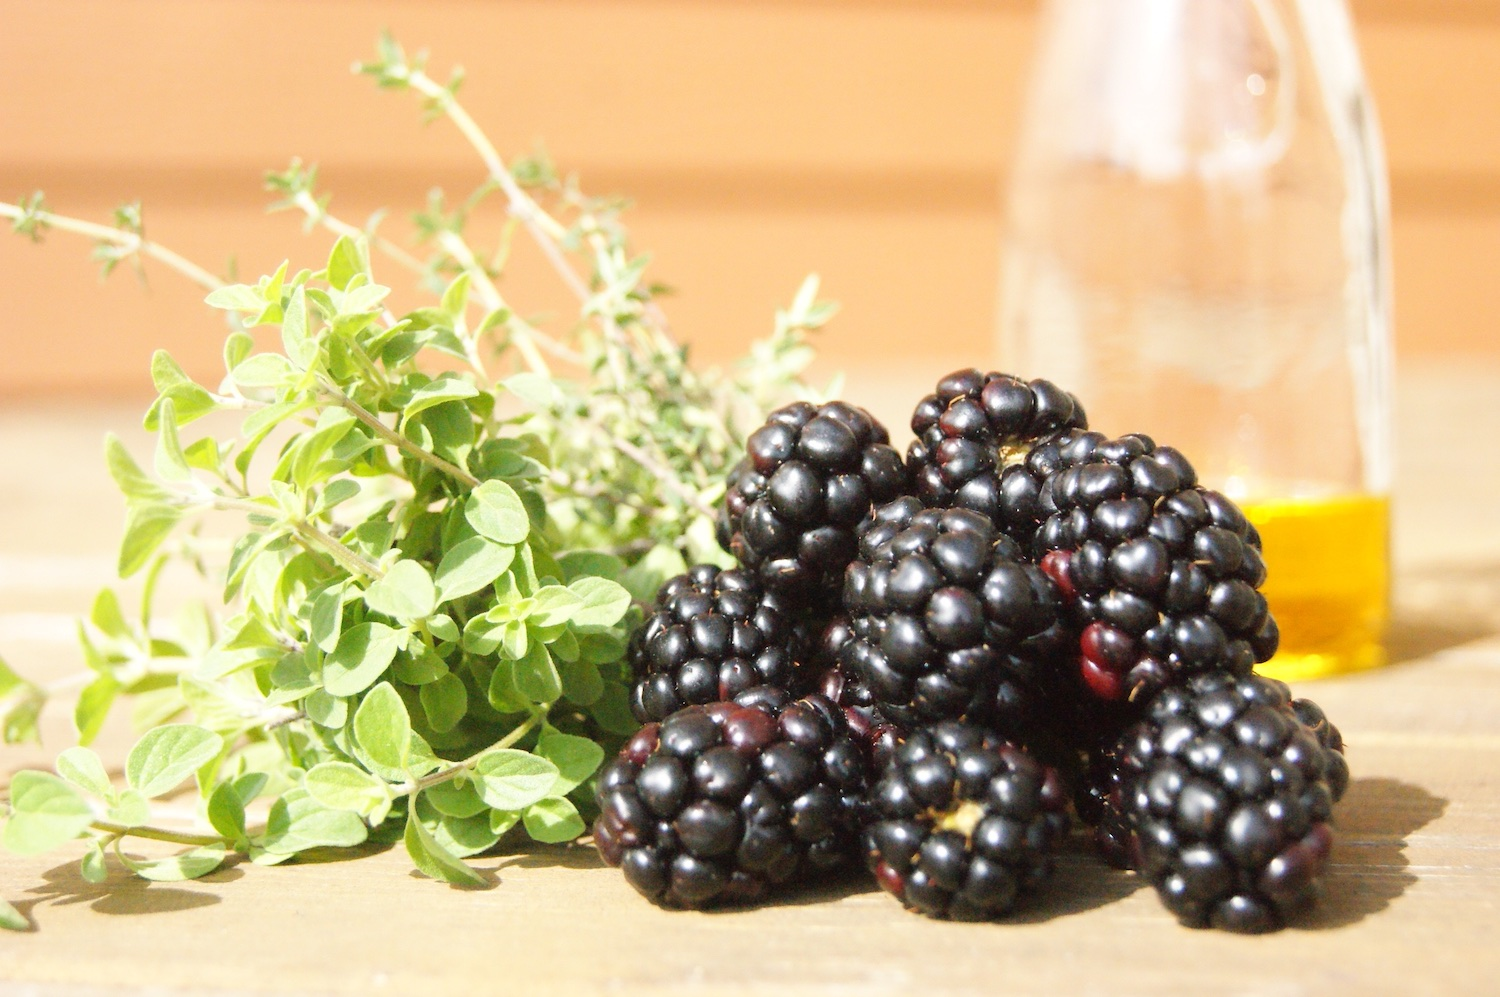 Blackberries and fresh herbs dressing